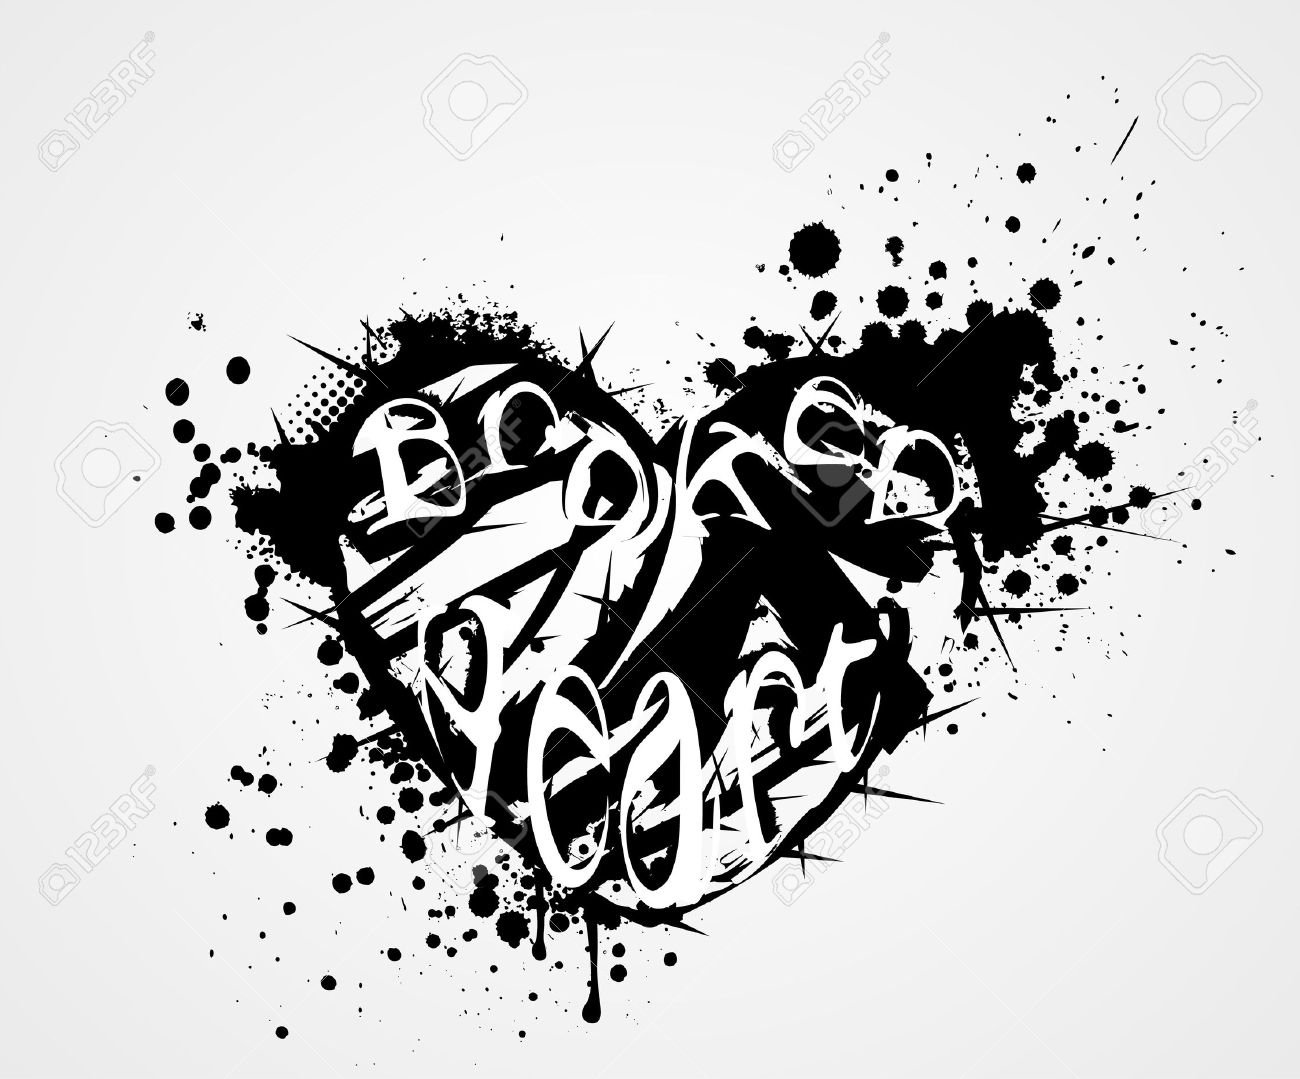 Grunge heart with broken heart symbol and thorns royalty free grunge heart with broken heart symbol and thorns stock vector 20503753 buycottarizona